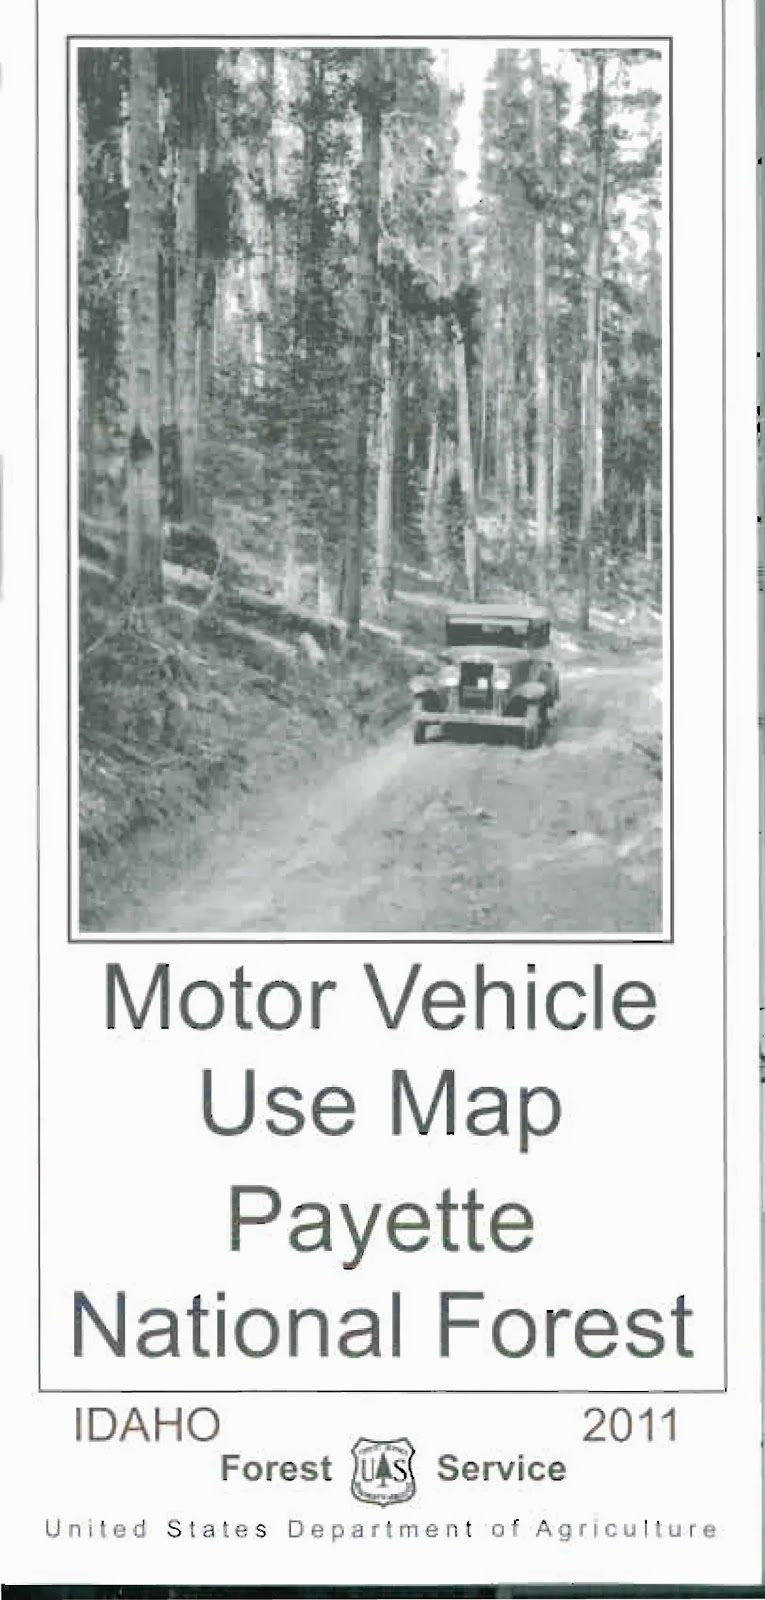 forest service motor vehicle use maps also are important to consult for information about trail and road closures to hunters on ohvs